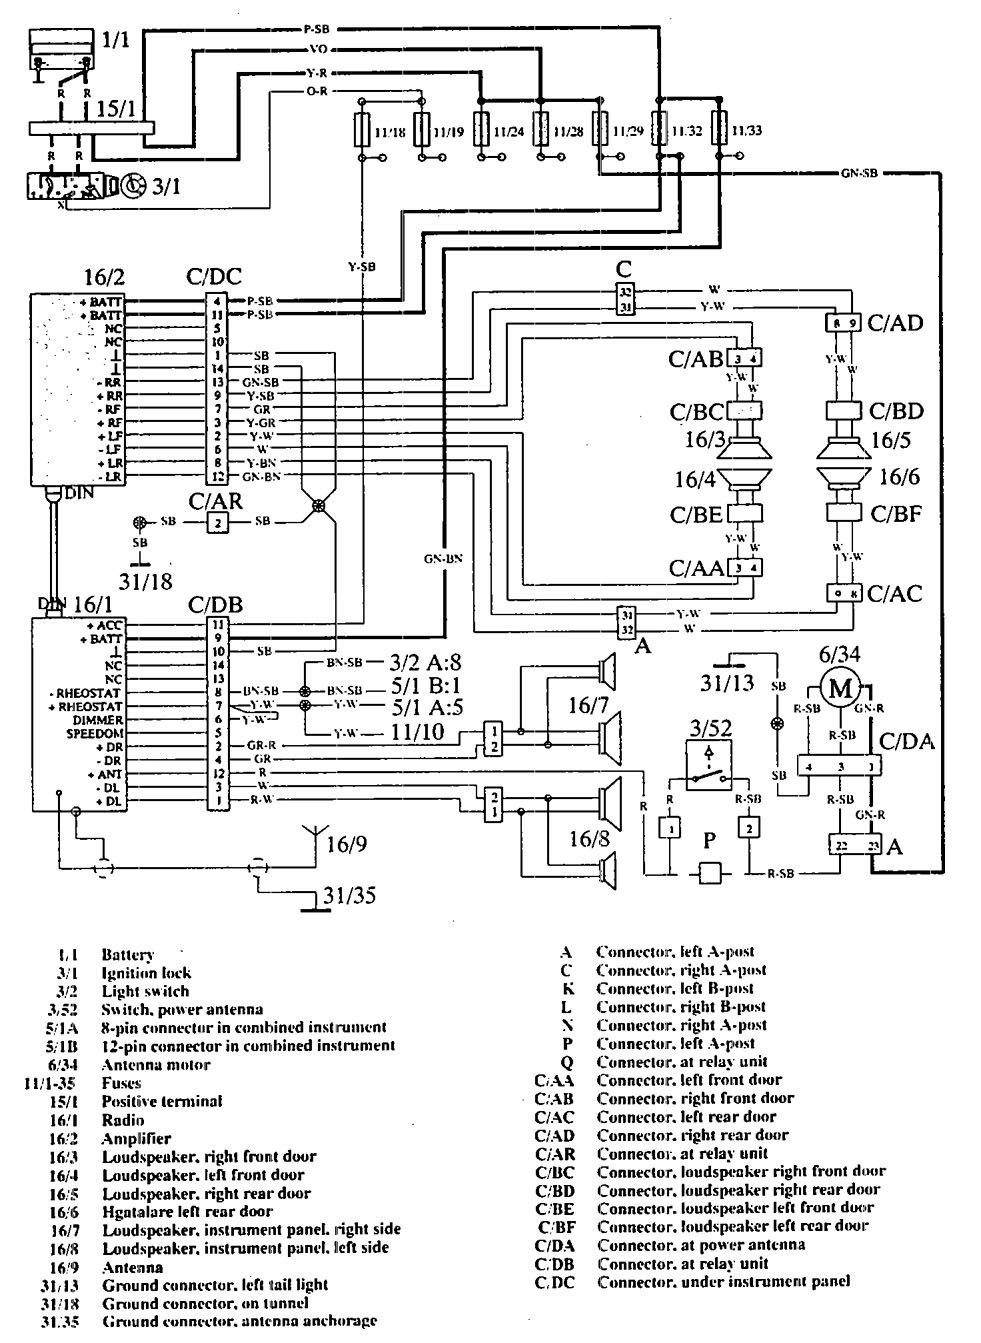 volvo 960 wiring diagram 1996